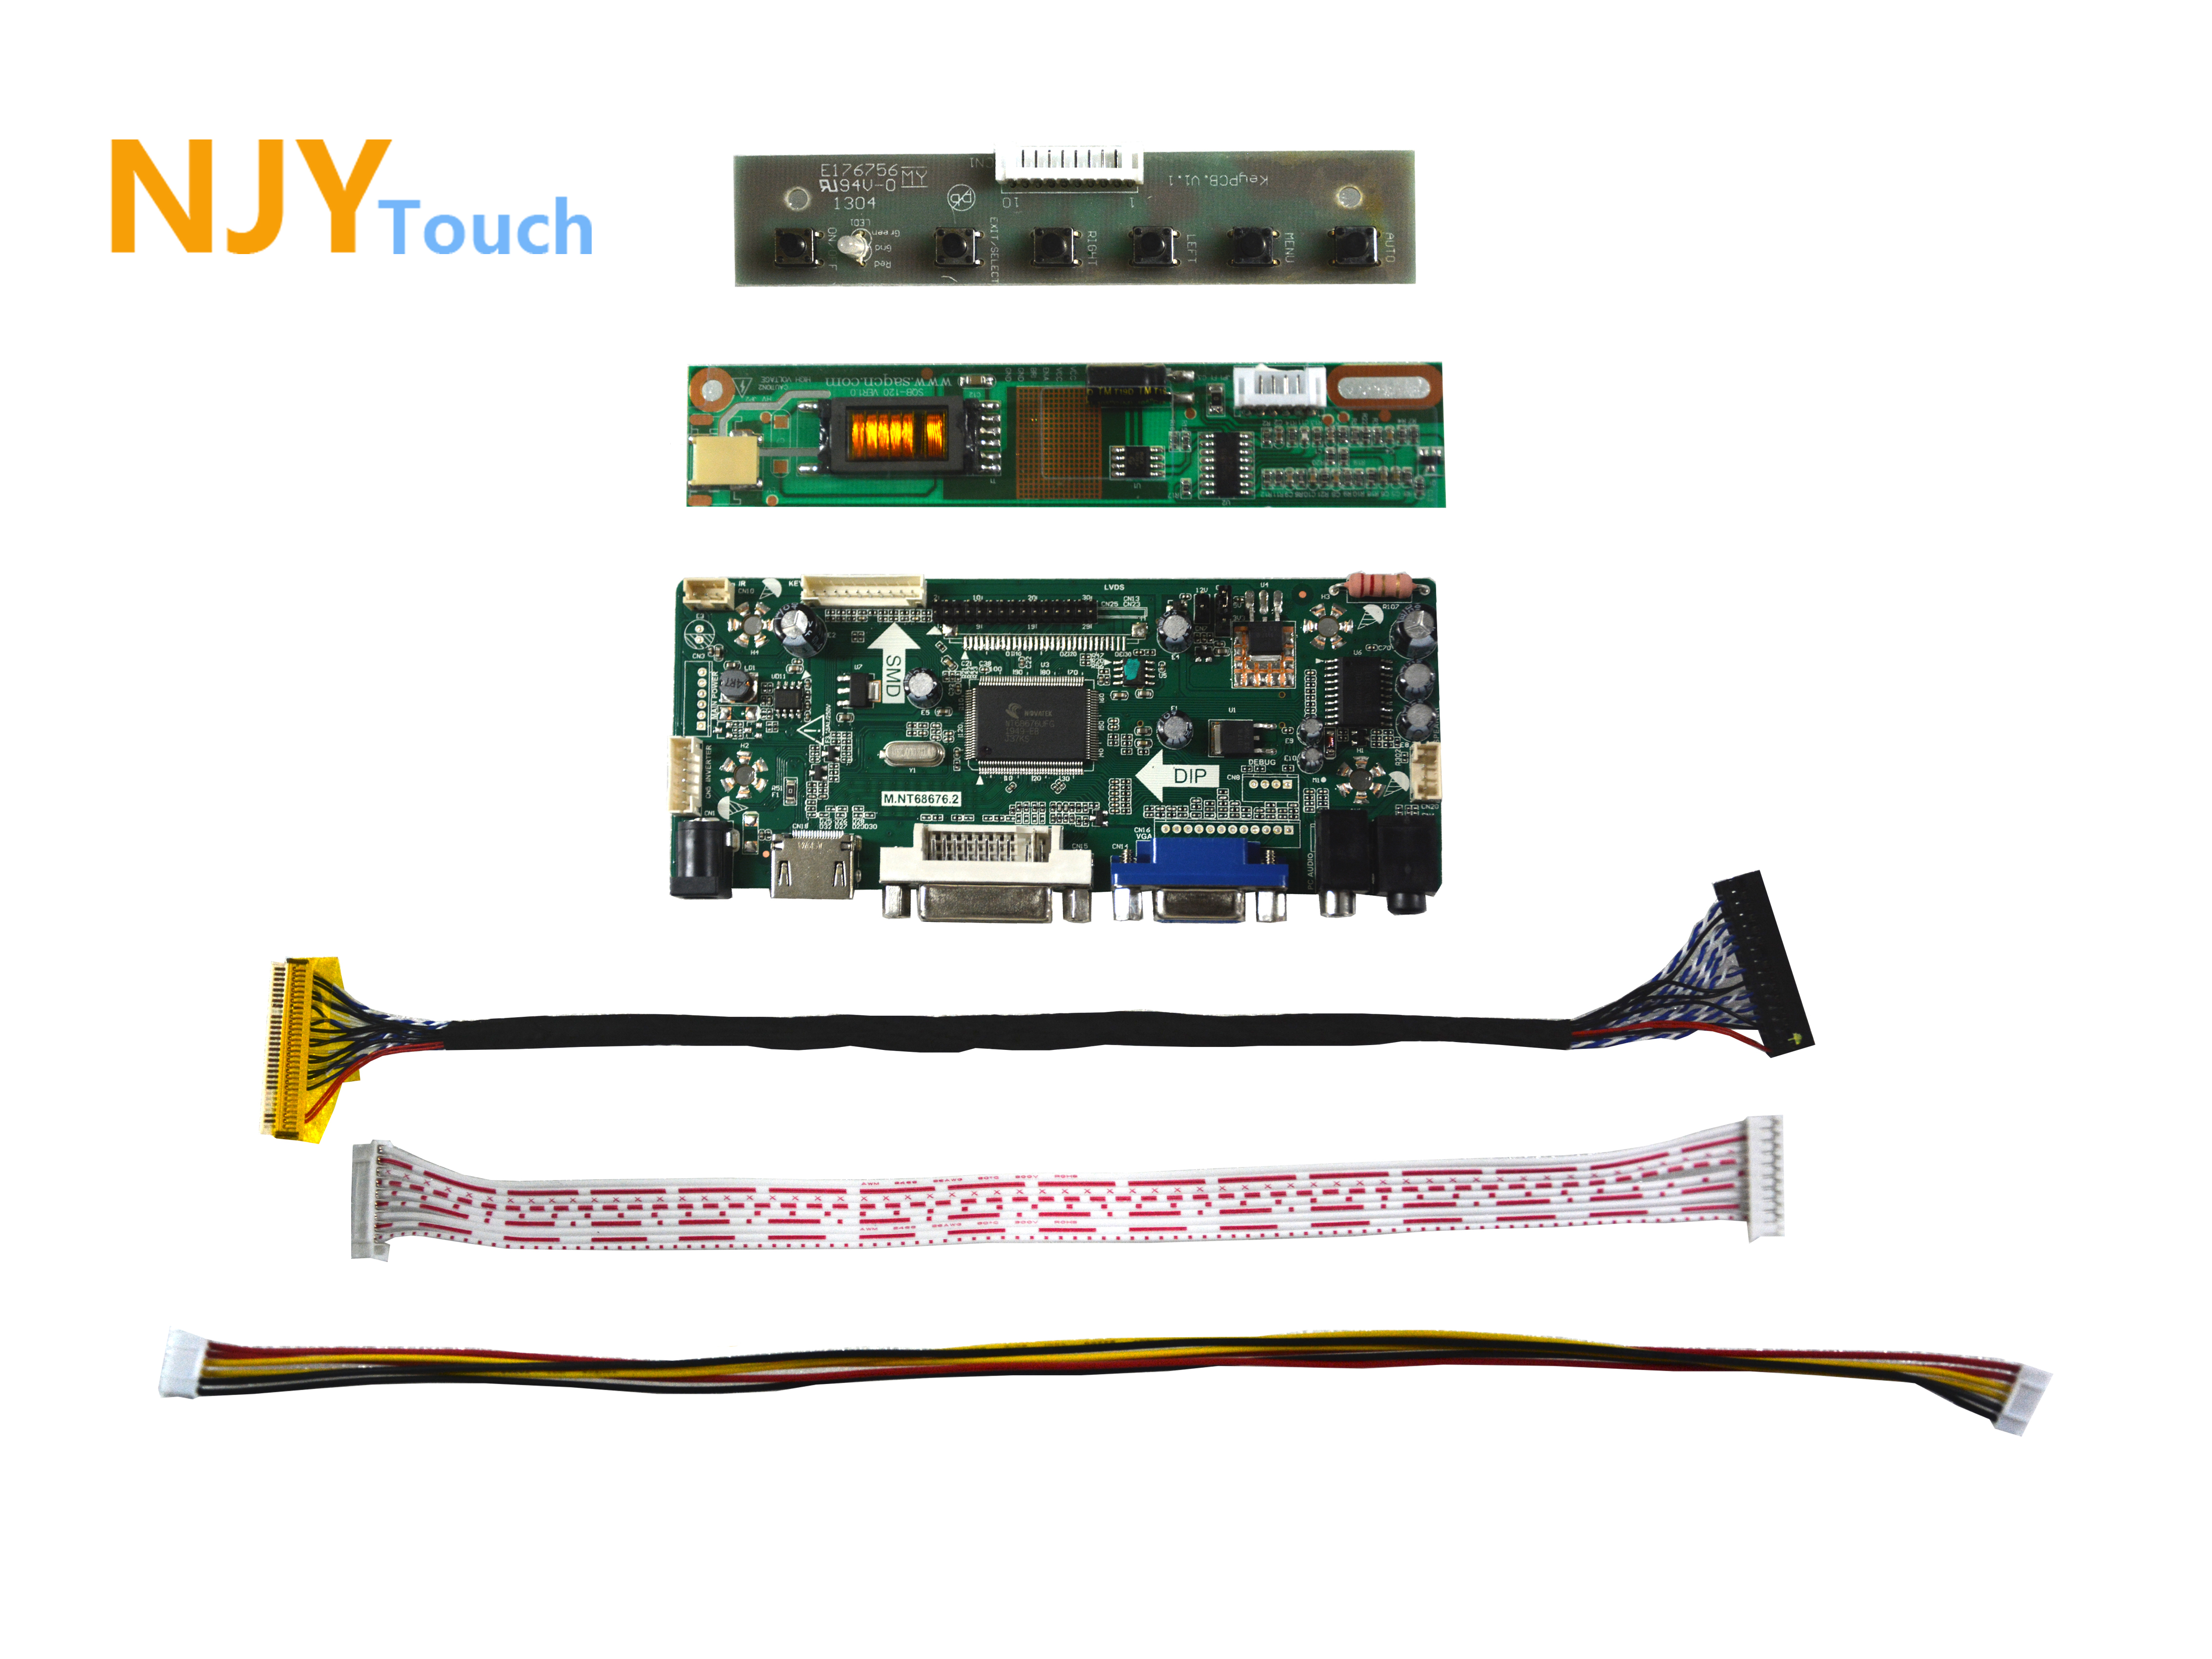 NJYTouch M.NT68676.2A HDMI VGA DVI Controller Board For 14.1inch B141PW01 V3 B141PW01 V0 1440x900 LCD Screen